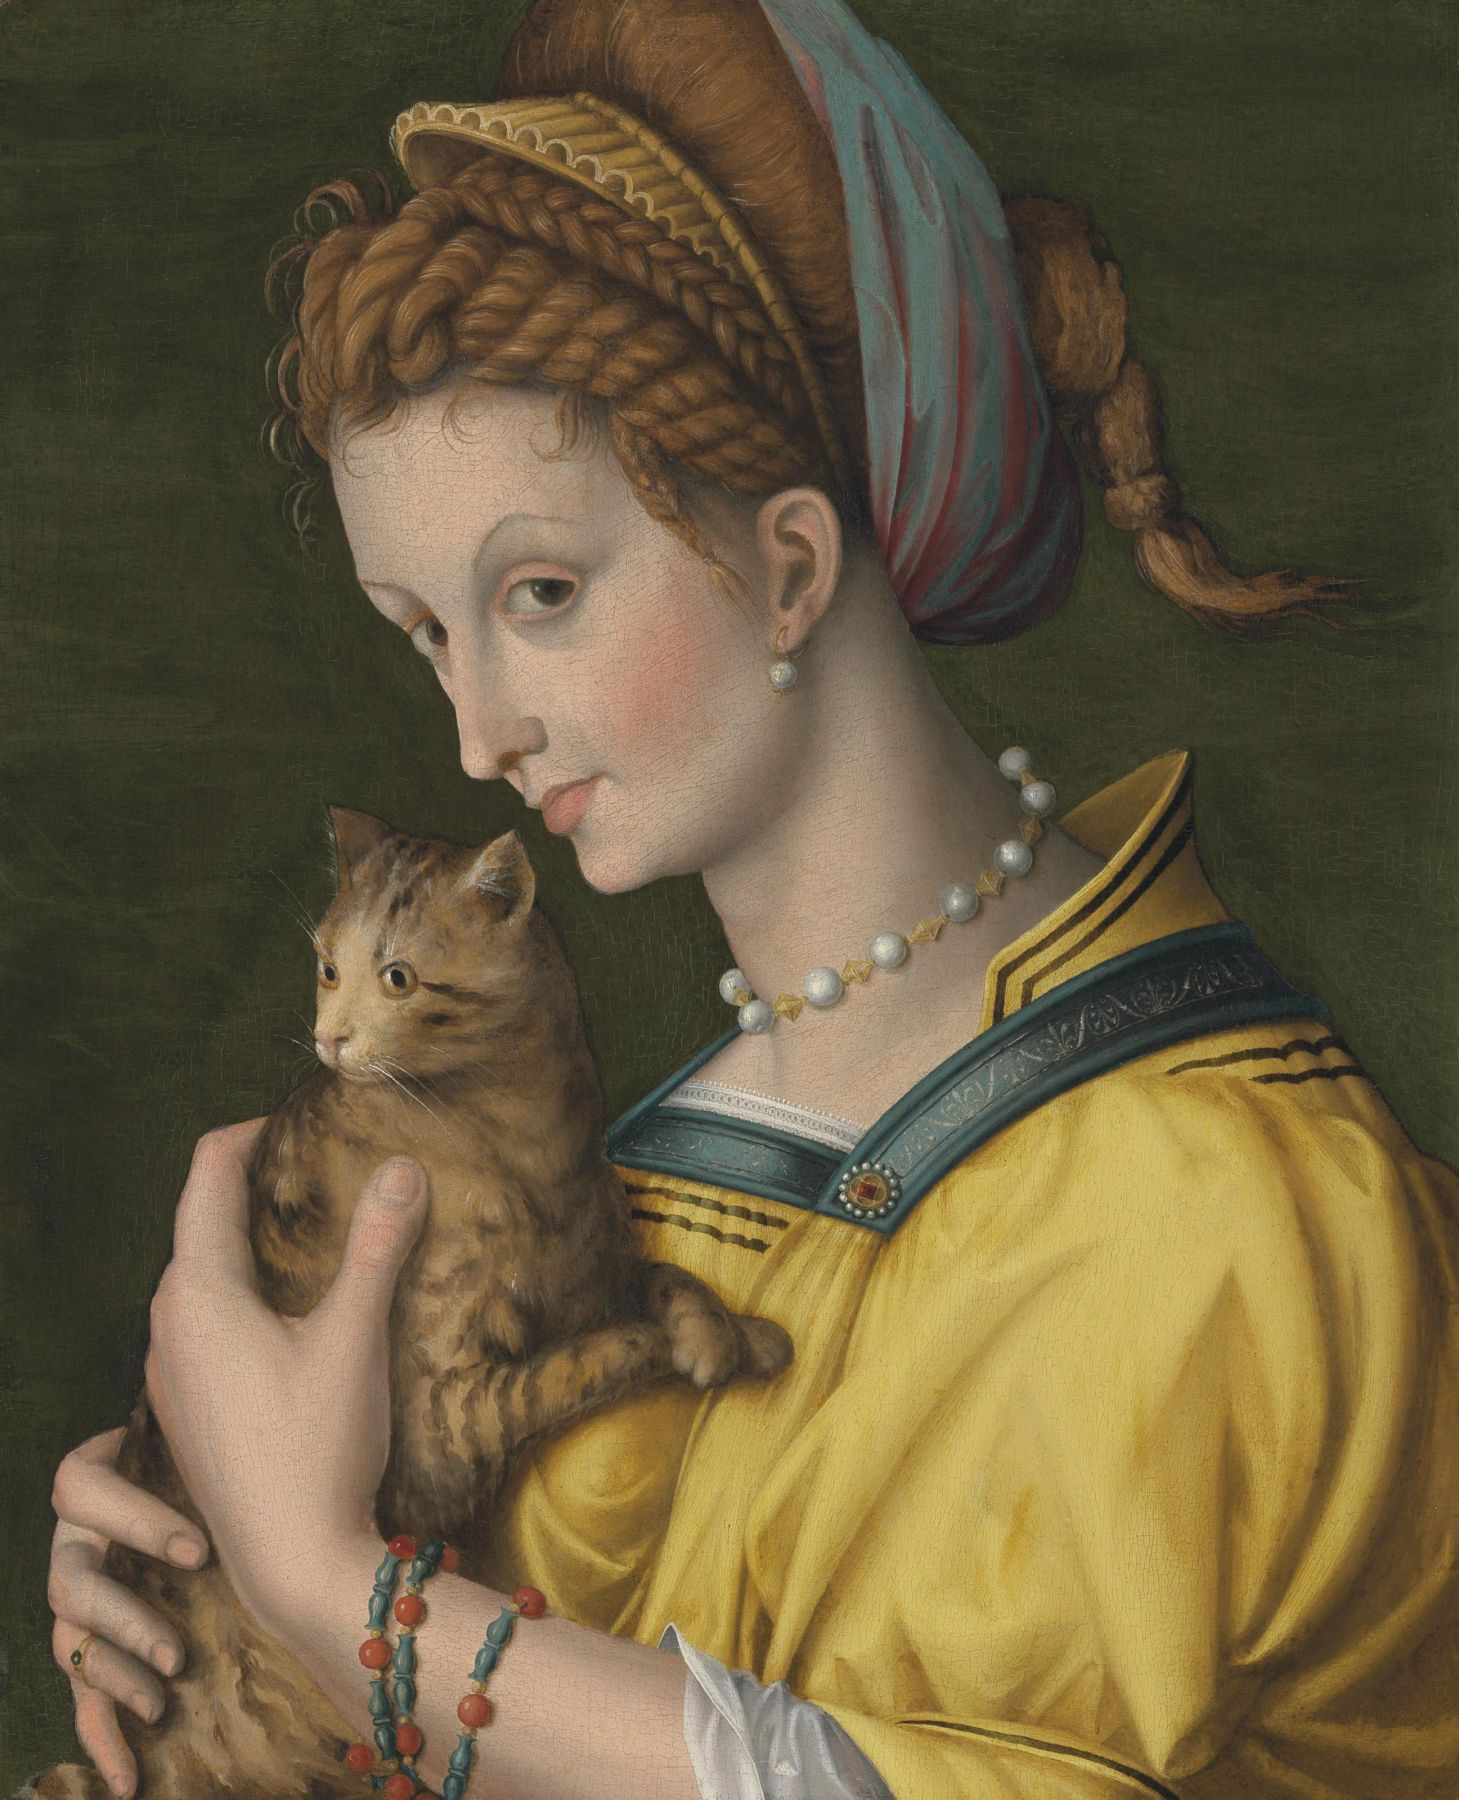 Antonio d'Ubertino Verdi, called Bacchiacca (1499 – 1572) Portrait of a Young Lady Holding a Cat Private Collection Nicholas Hall Art Gallery Dealer Old Masters